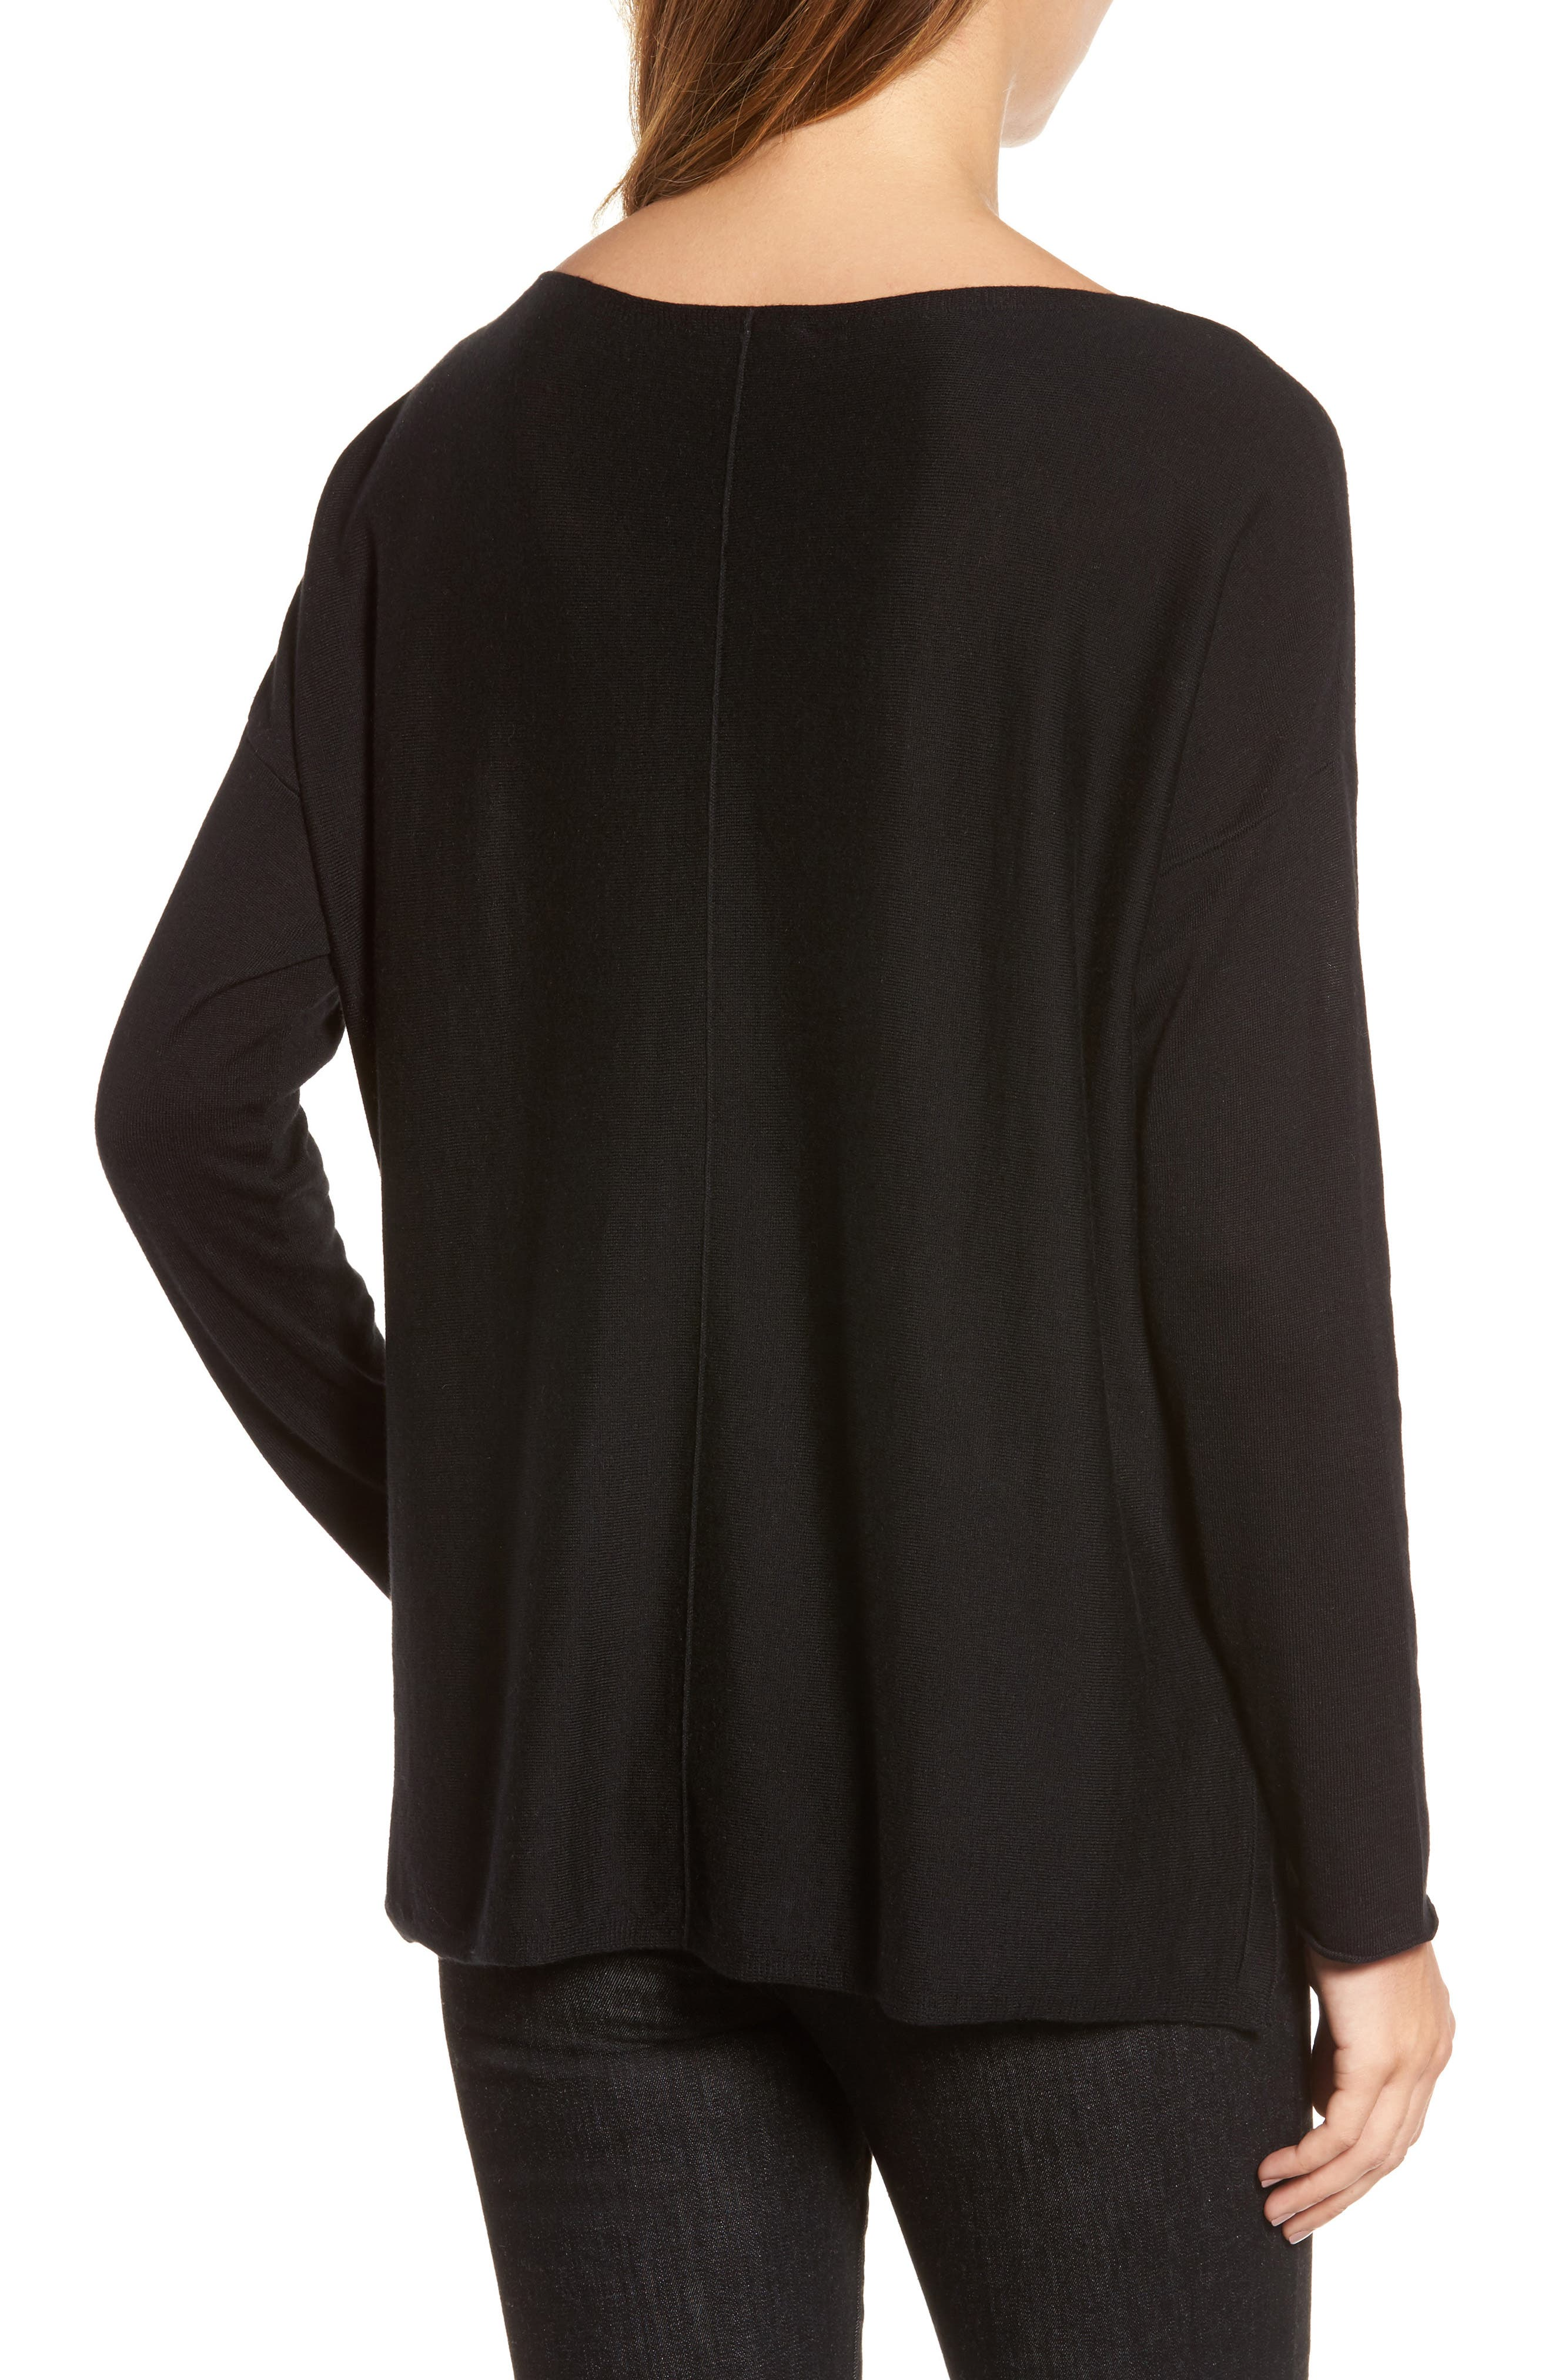 Tencel<sup>®</sup> Lyocell Blend High/Low Sweater,                             Alternate thumbnail 2, color,                             001